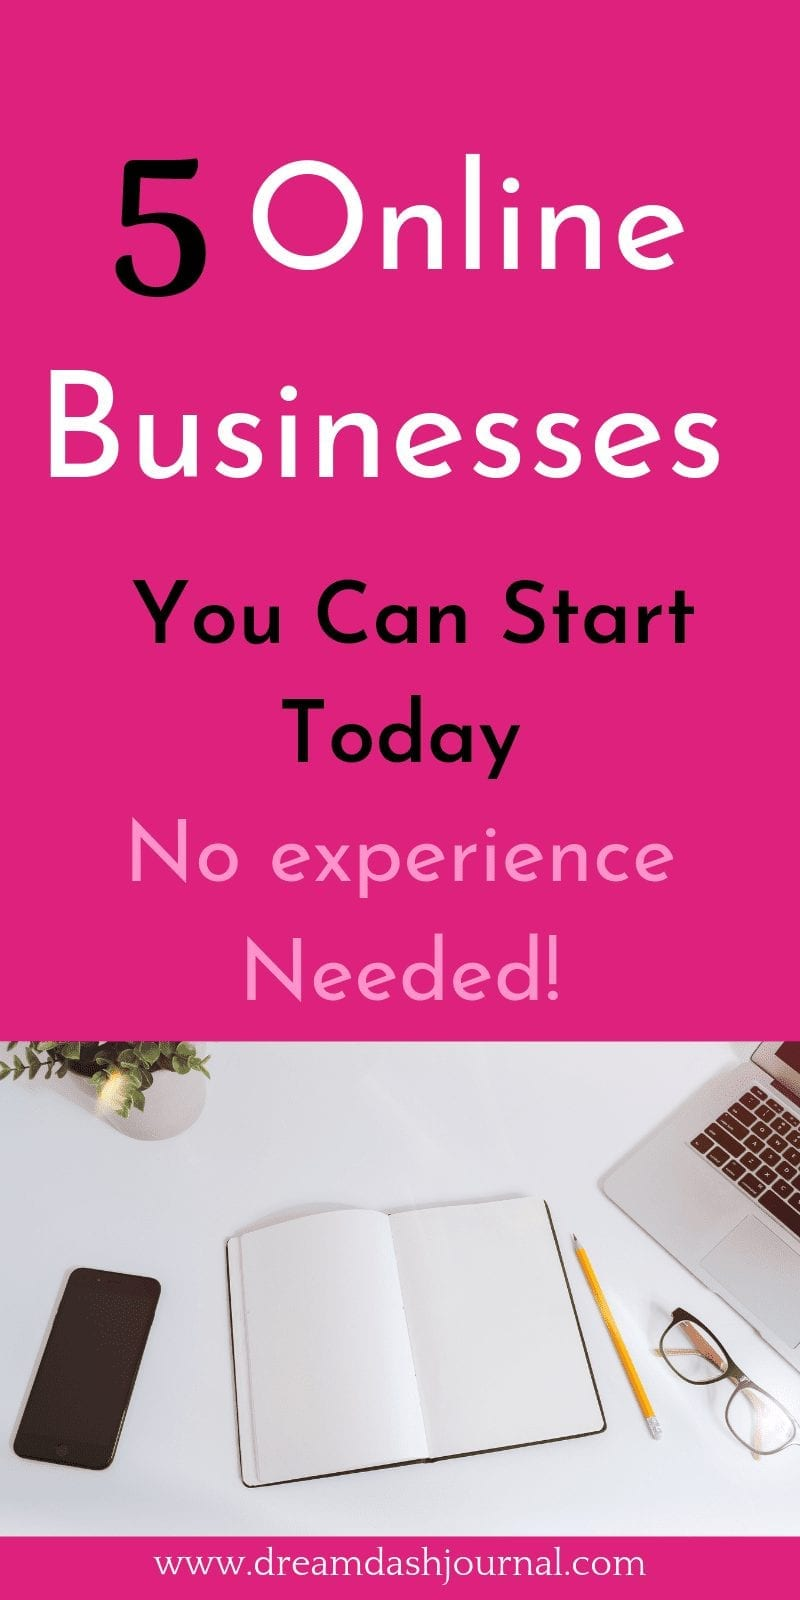 5 Profitable Home Business Ideas Online {With No Experience Needed!}